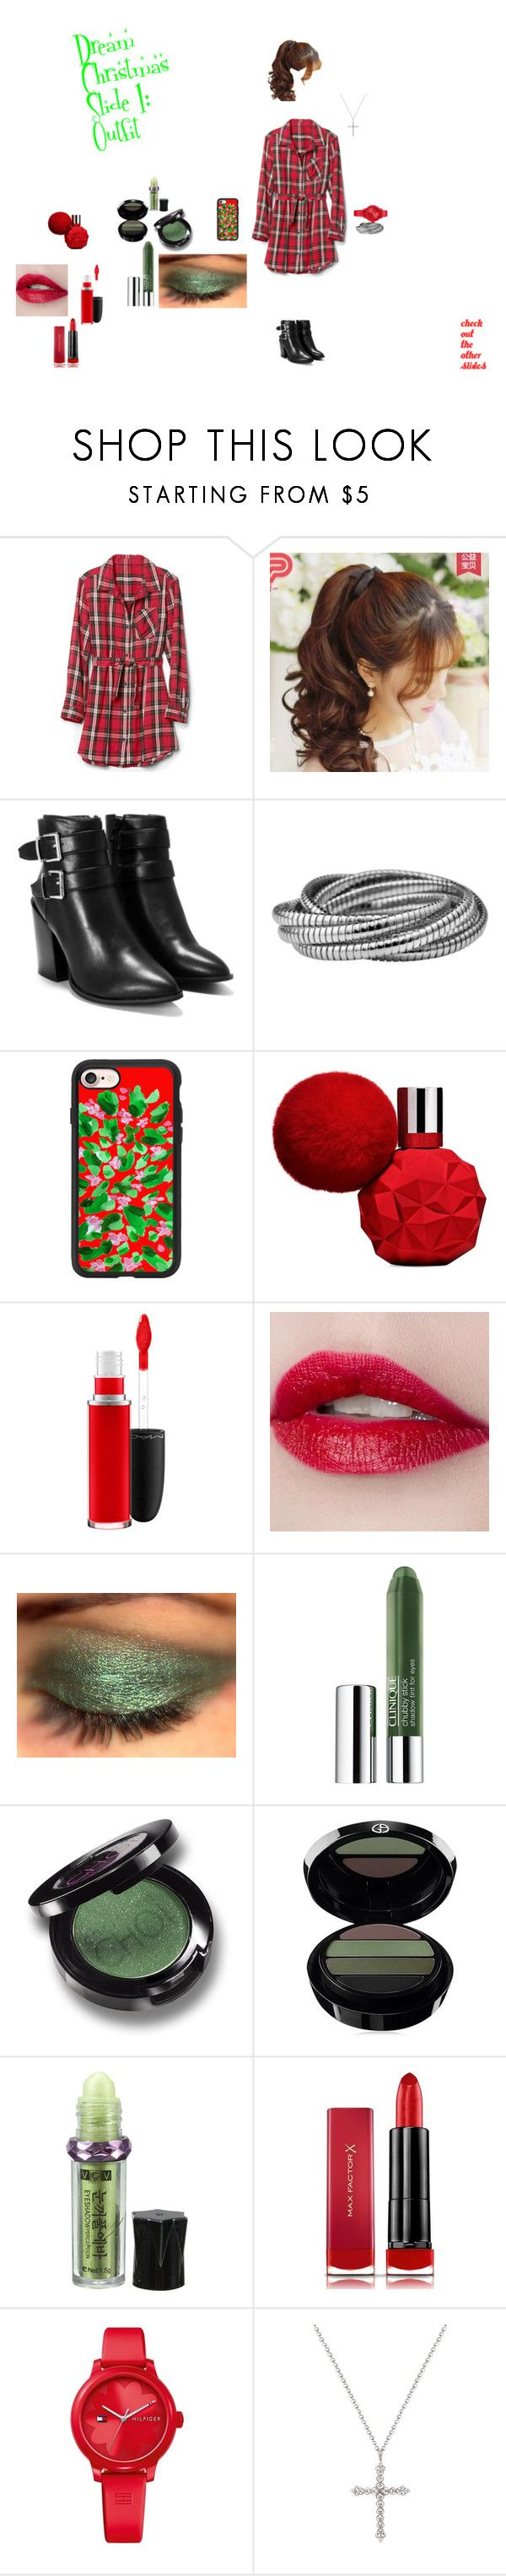 """""""Christmas Slide 1"""" by american2000s ❤ liked on Polyvore featuring Pin Show, Nasty Gal, Casetify, MAC Cosmetics, Clinique, Christina Choi Cosmetics, Giorgio Armani, Max Factor, Tommy Hilfiger and GetReadyForChristmasWithUs"""